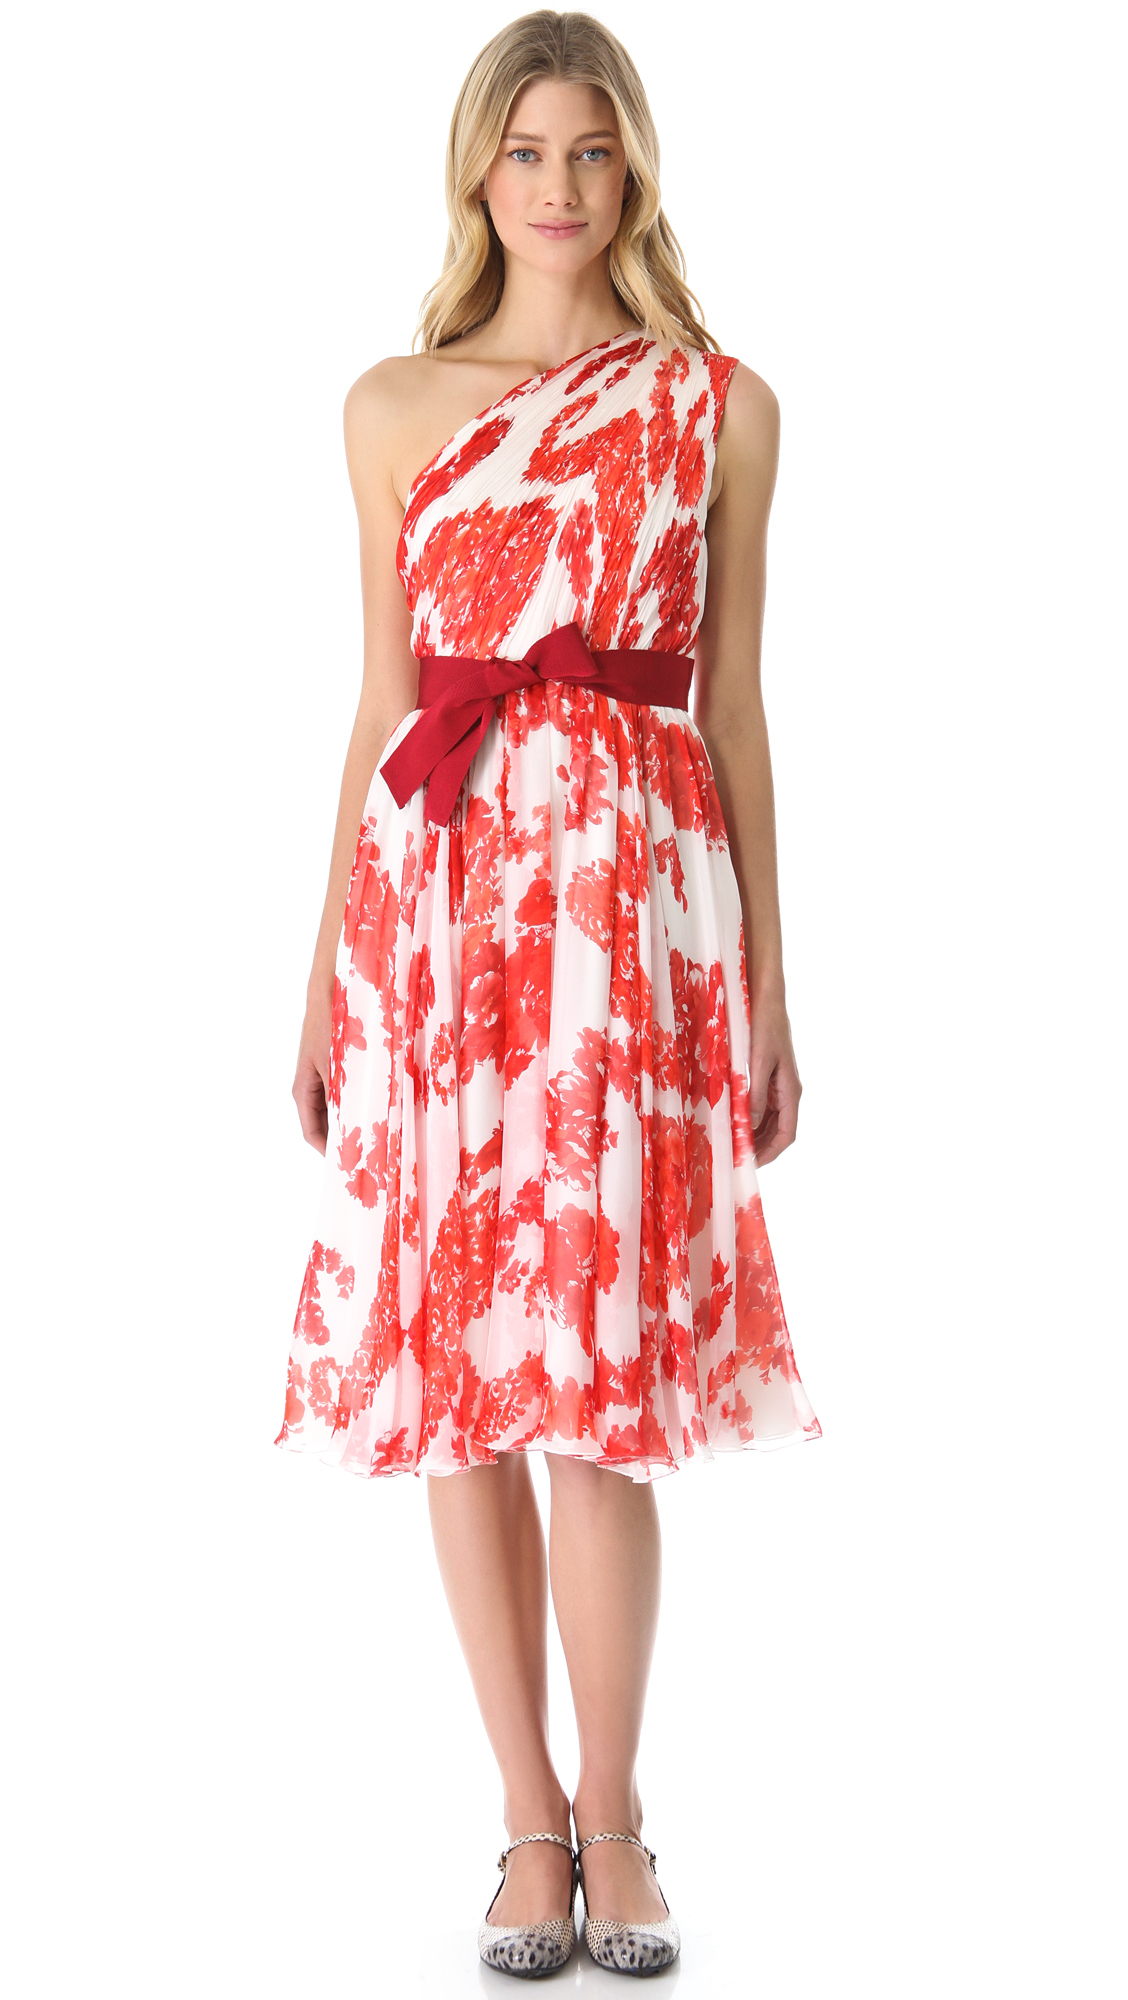 93a897e145ce Lyst - Giambattista Valli One Shoulder Floral Dress in Orange